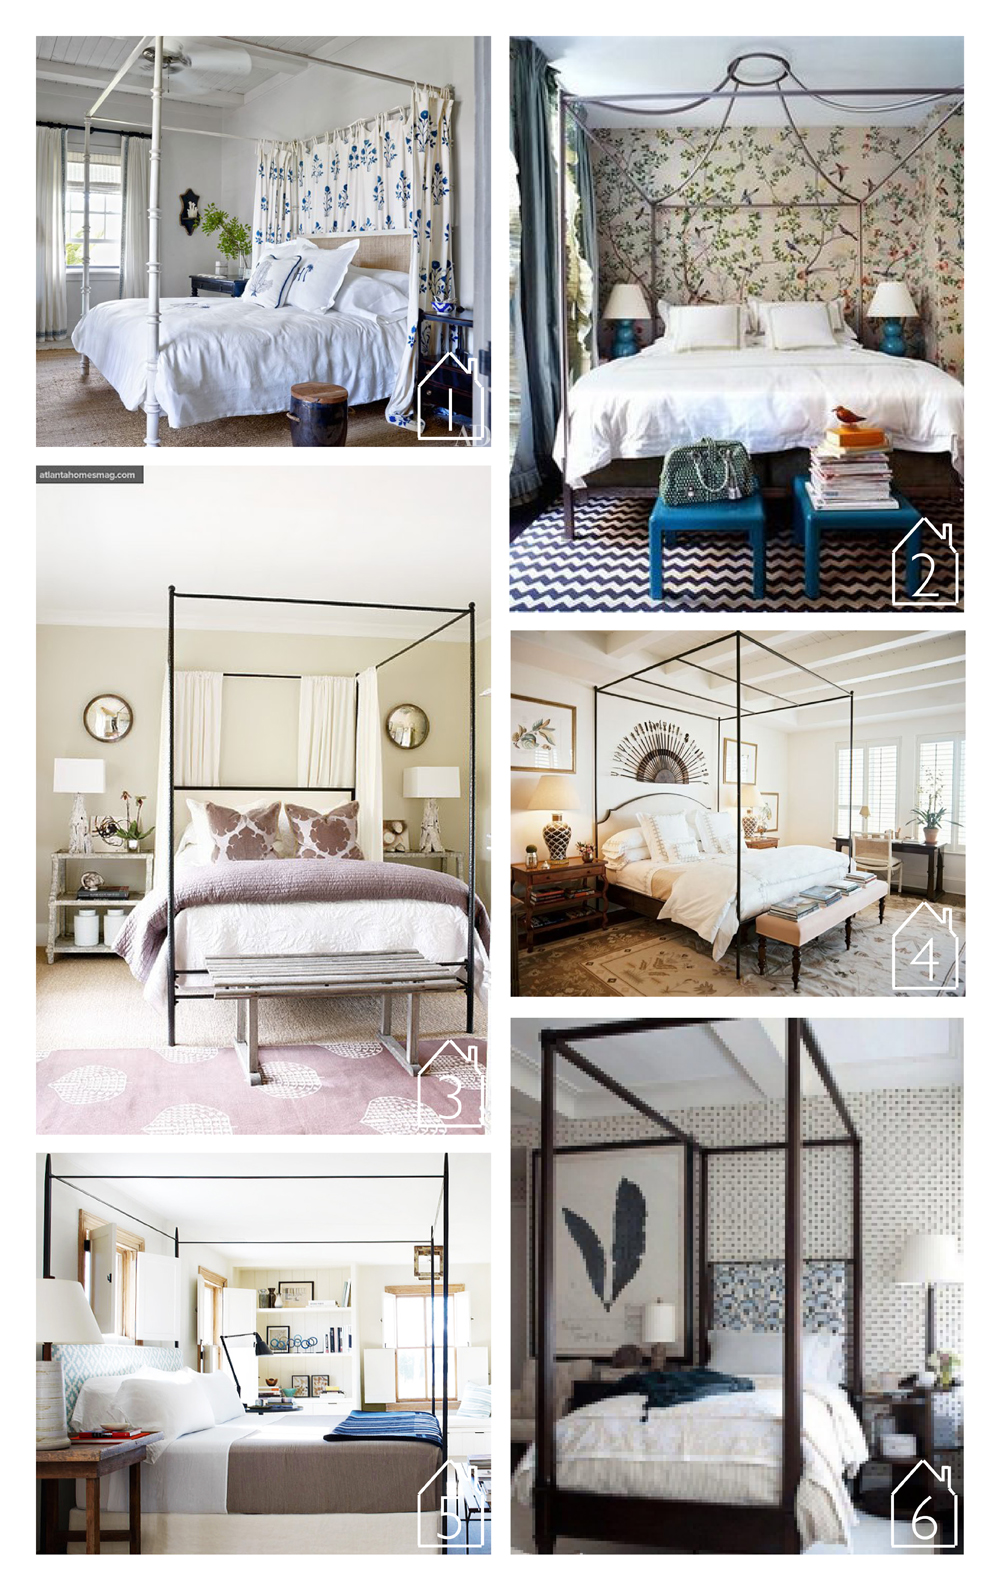 1. design by  Alessandra Branca' s featured in  Architectural Digest   2. design by  Miles Redd  featured in  Domino   3. via  Prairie Perch   4. design by  Bunny Williams  via  Lonny   5. design by  Robert Stillin  via  Domaine Home   6. via  OBX trading company